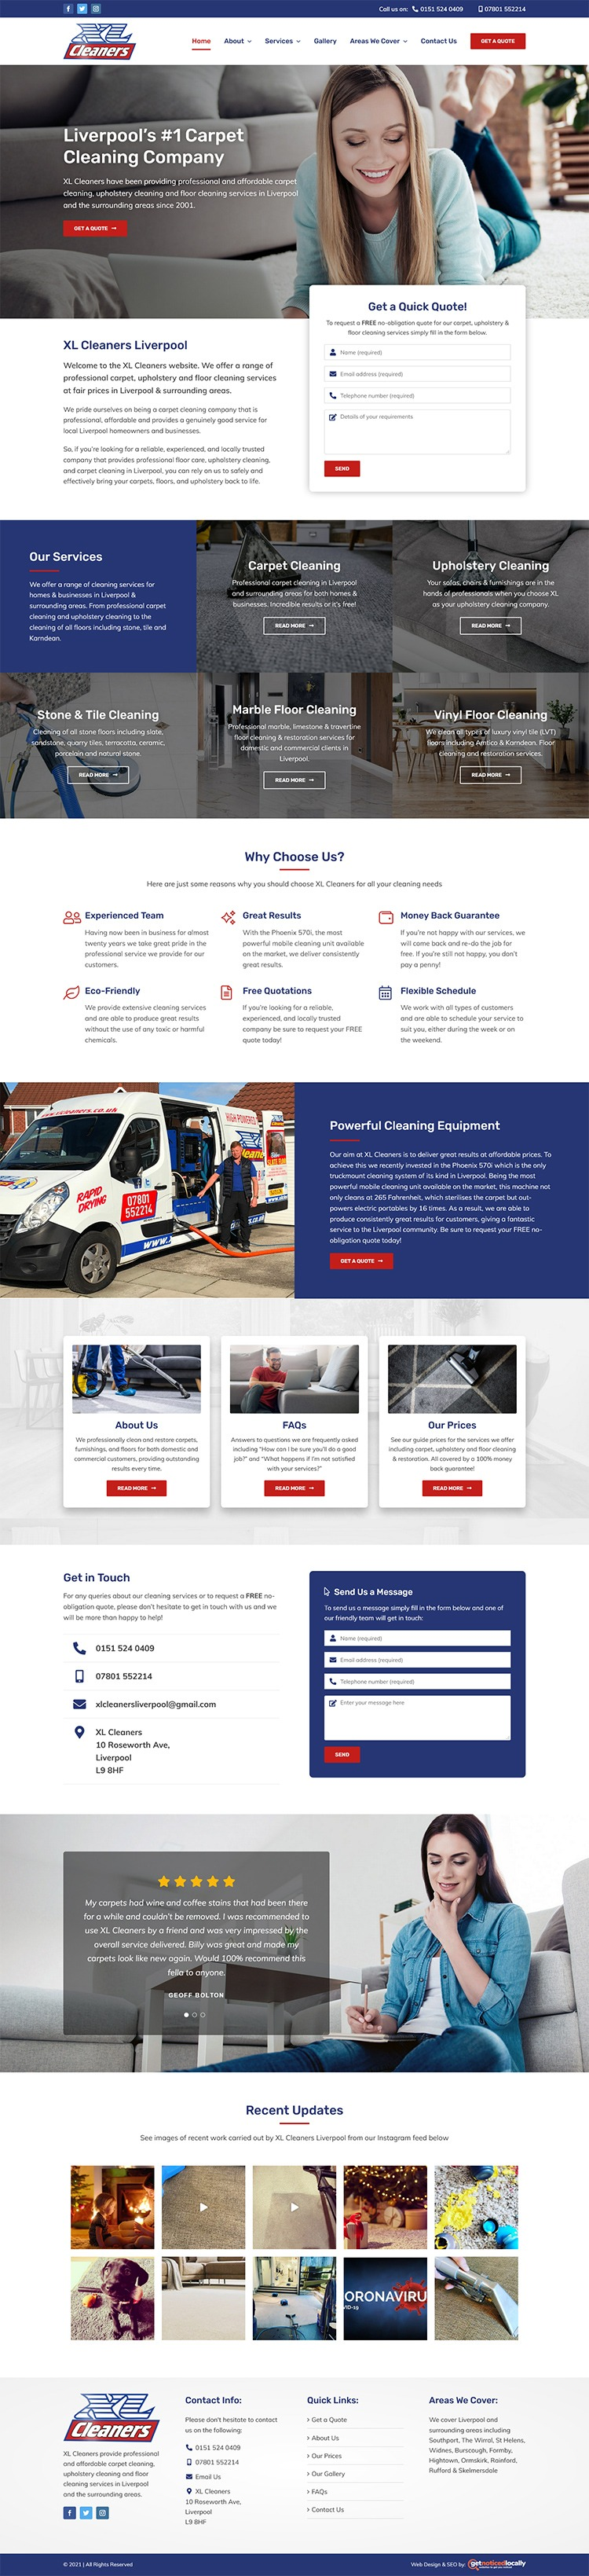 Web Design for XL Cleaners